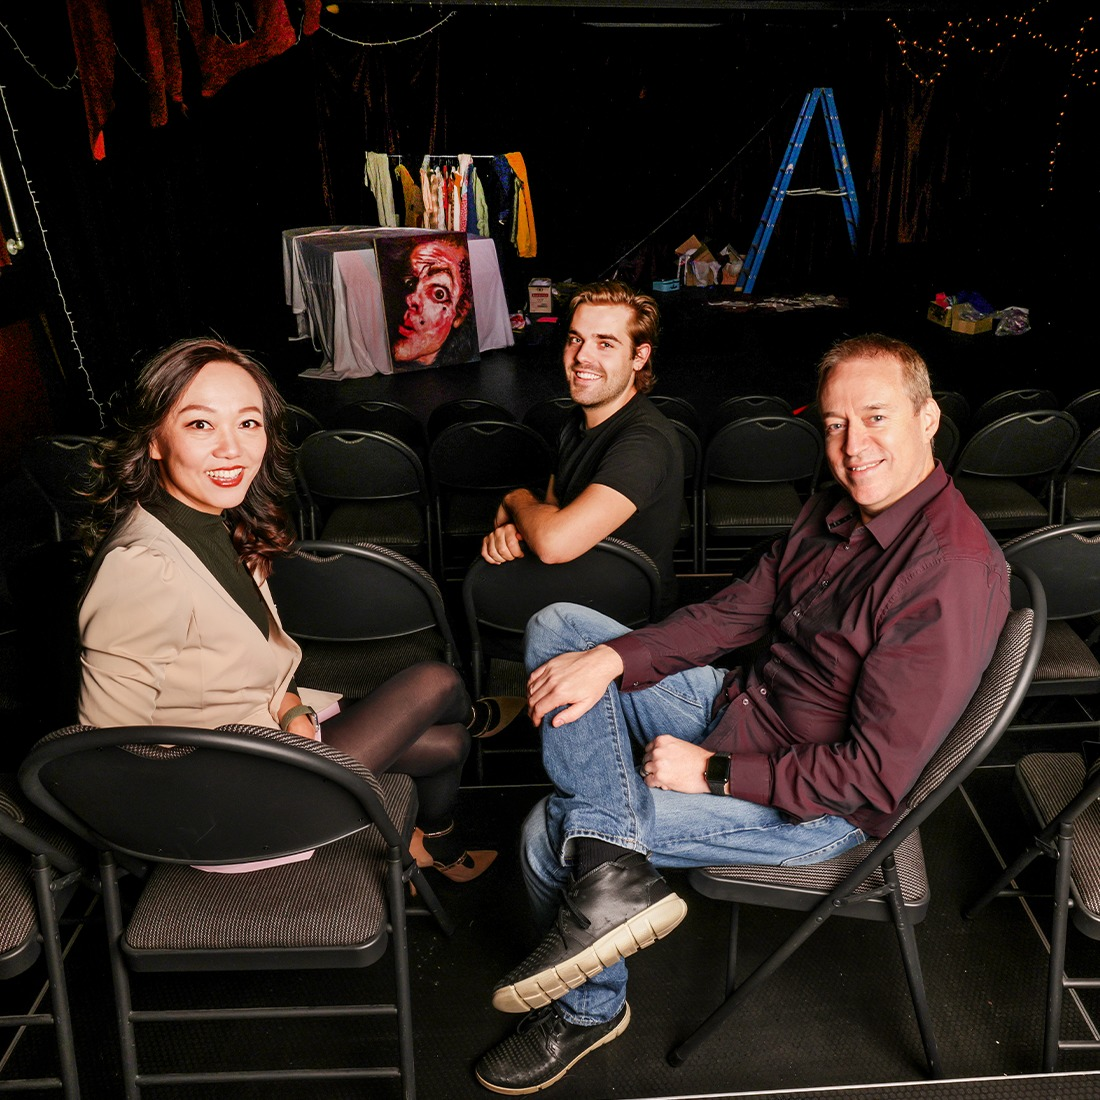 Three people sitting in chairs in a theatre facing the camera